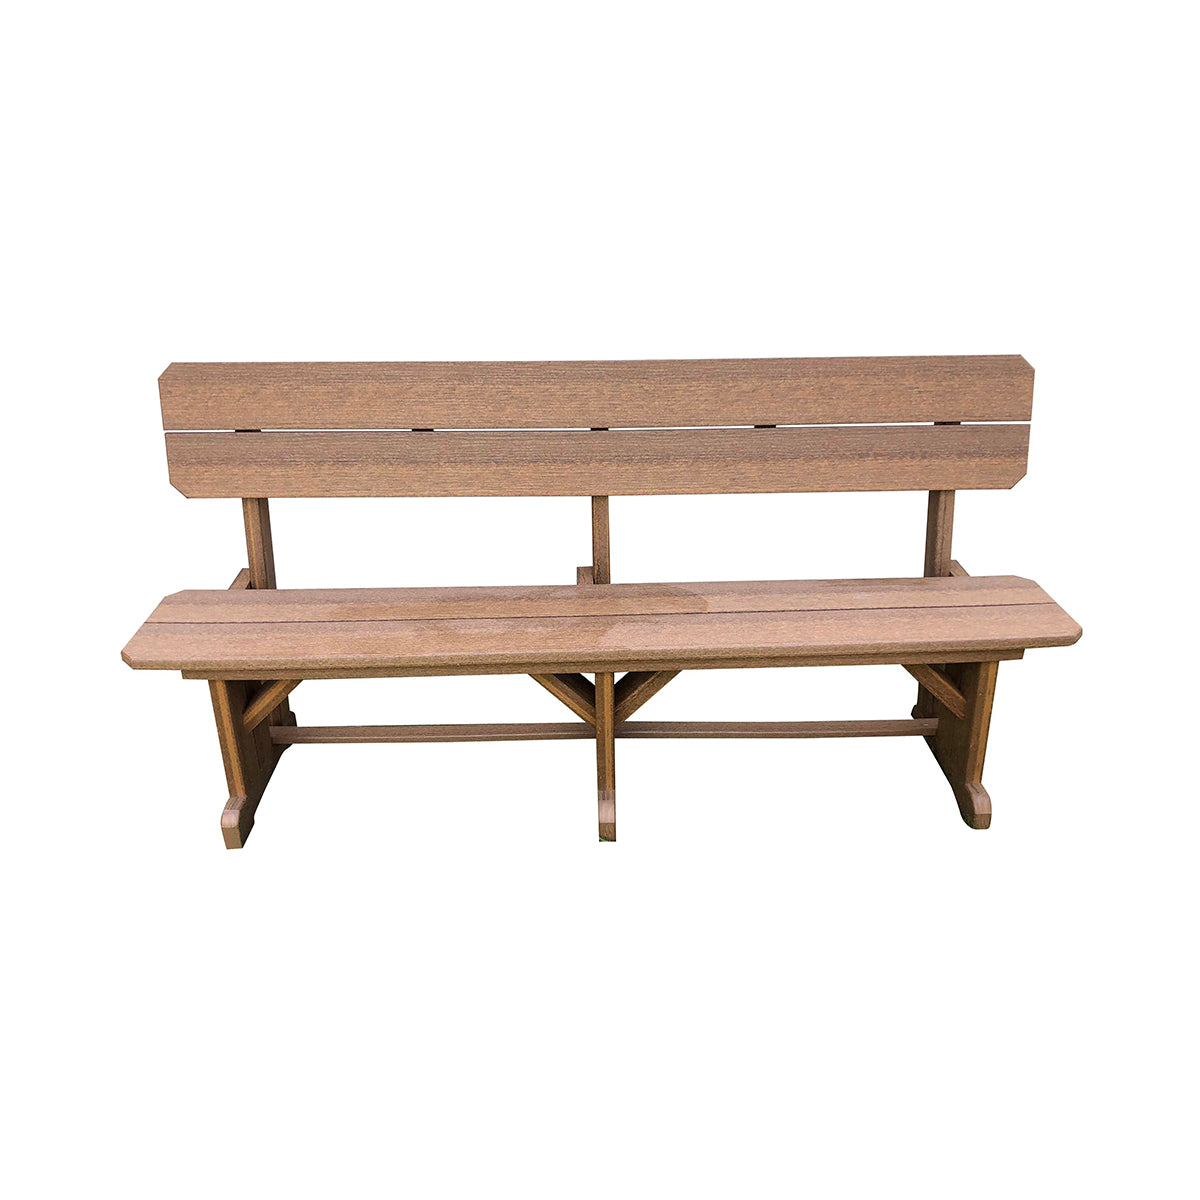 Wondrous Outdoor Rustic Polywood Dining Bench Antique Mahogany Gamerscity Chair Design For Home Gamerscityorg